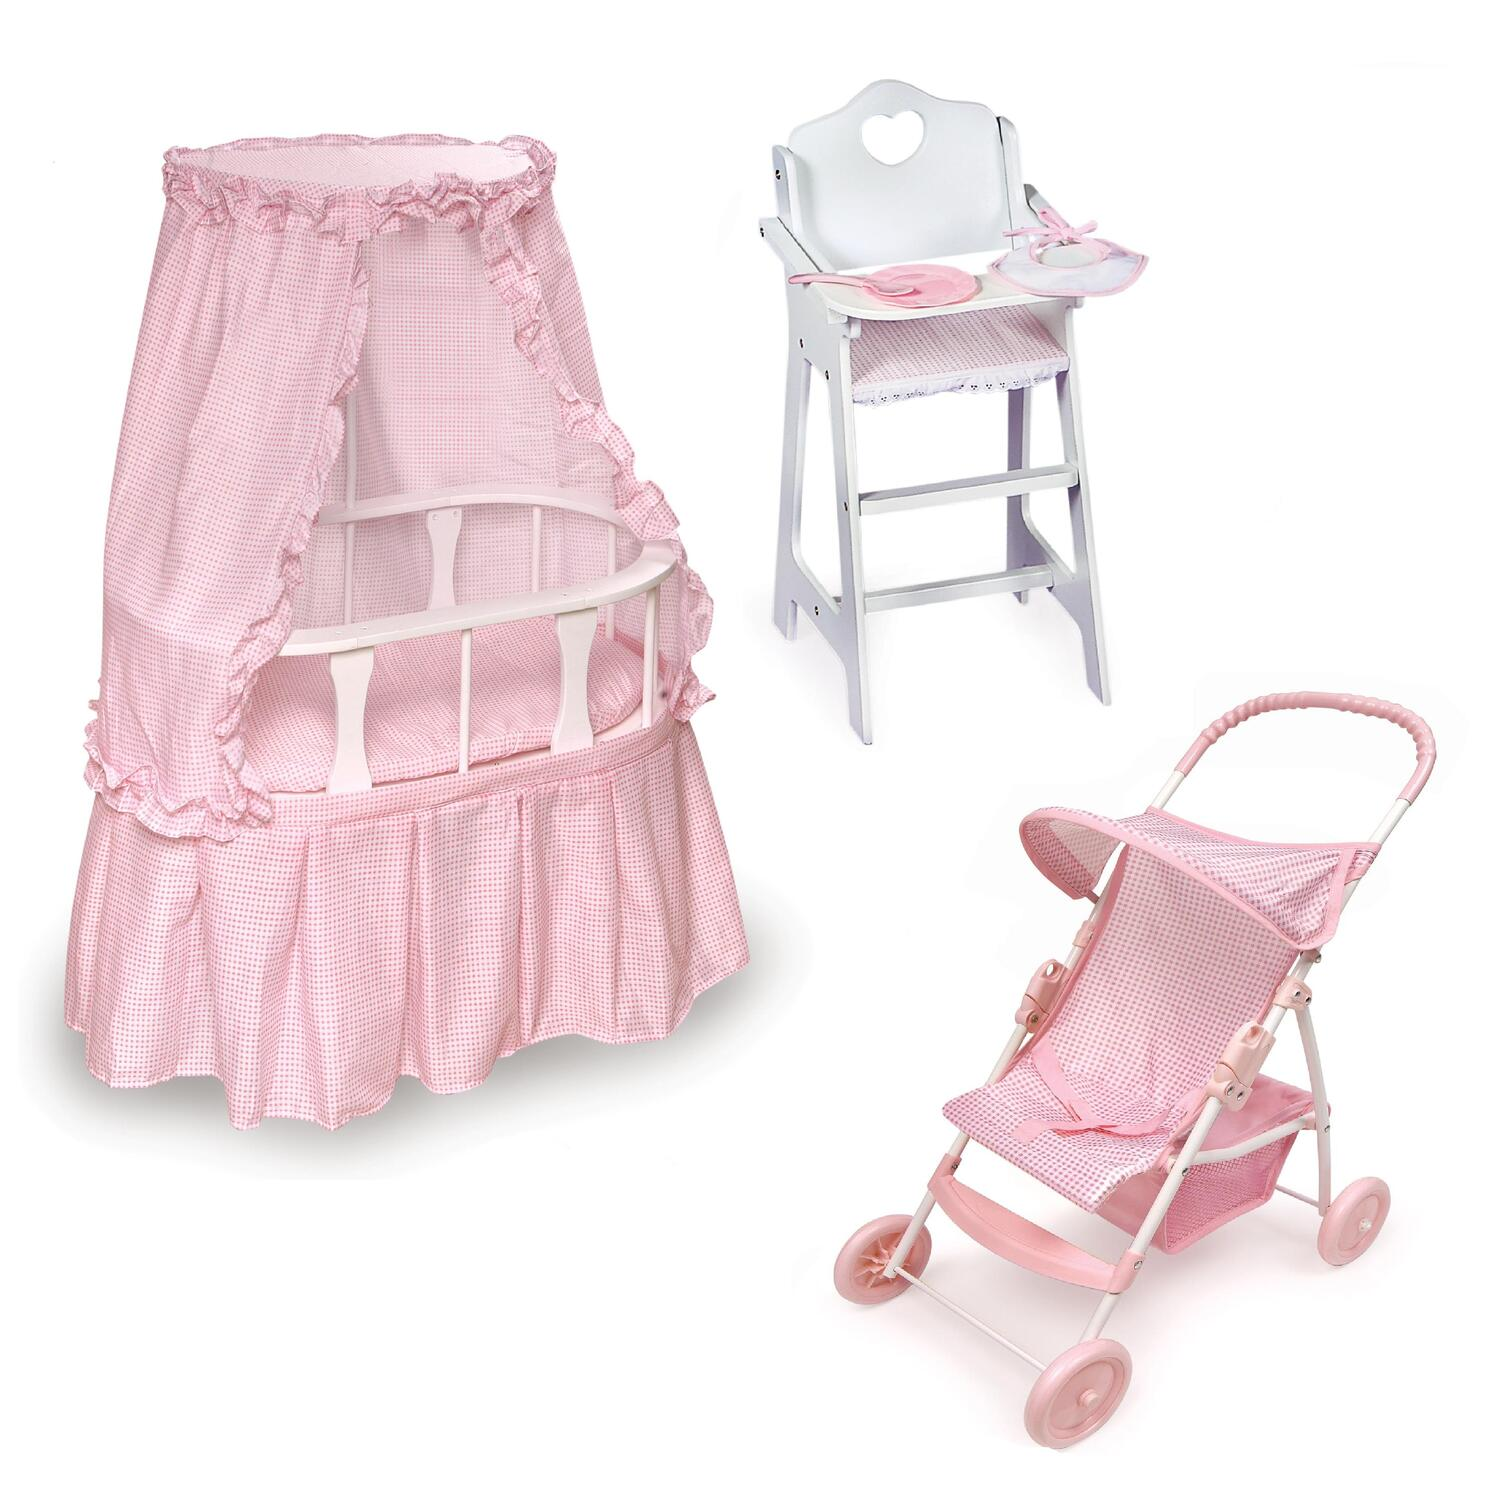 badger basket evolve high chair used lifeguard chairs for sale marvelous interior images of homes oval doll bassinet furniture set ojcommerce pink